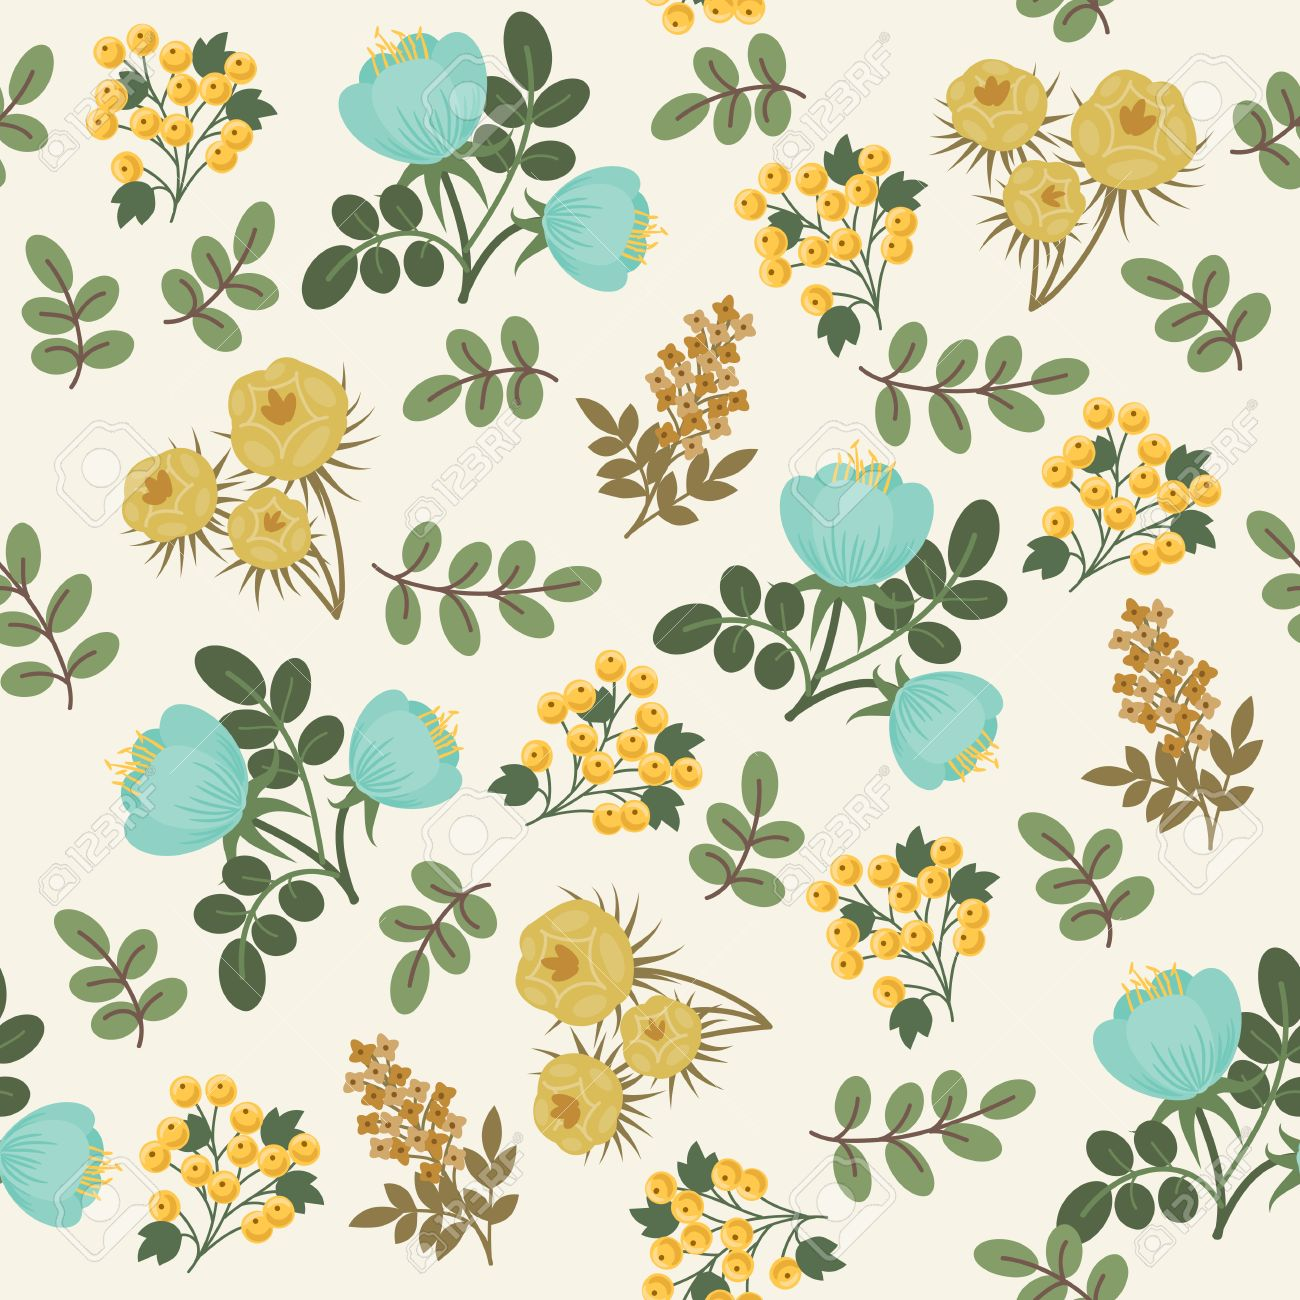 Floral Seamless Pattern Blue And Yellow Flowers With Green Leaves